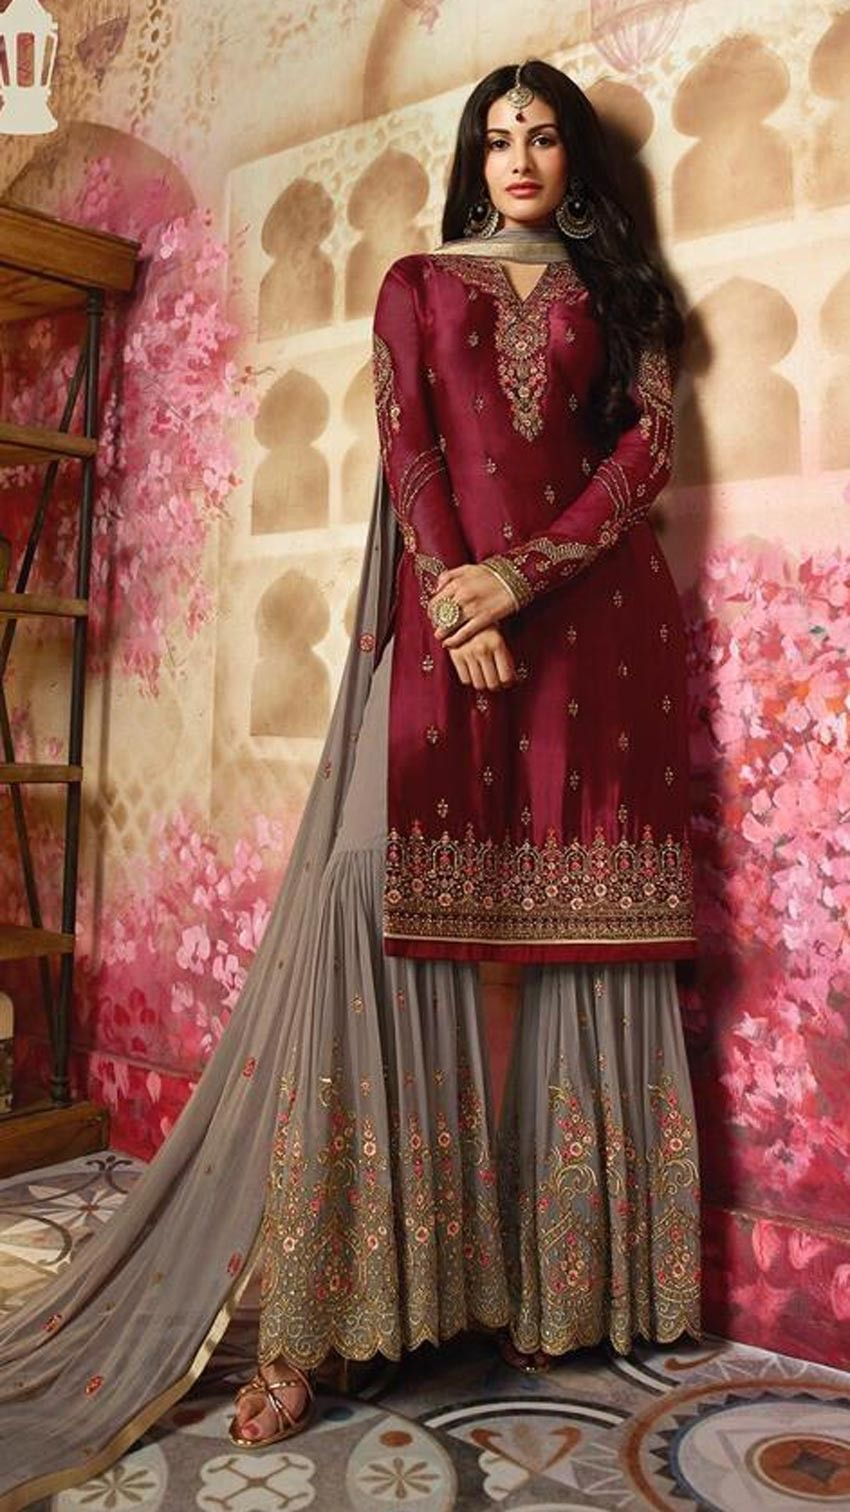 e38e03f254 Formal Wear Latest Sharara Designs 2018 HD Images | Indian in 2019 ...